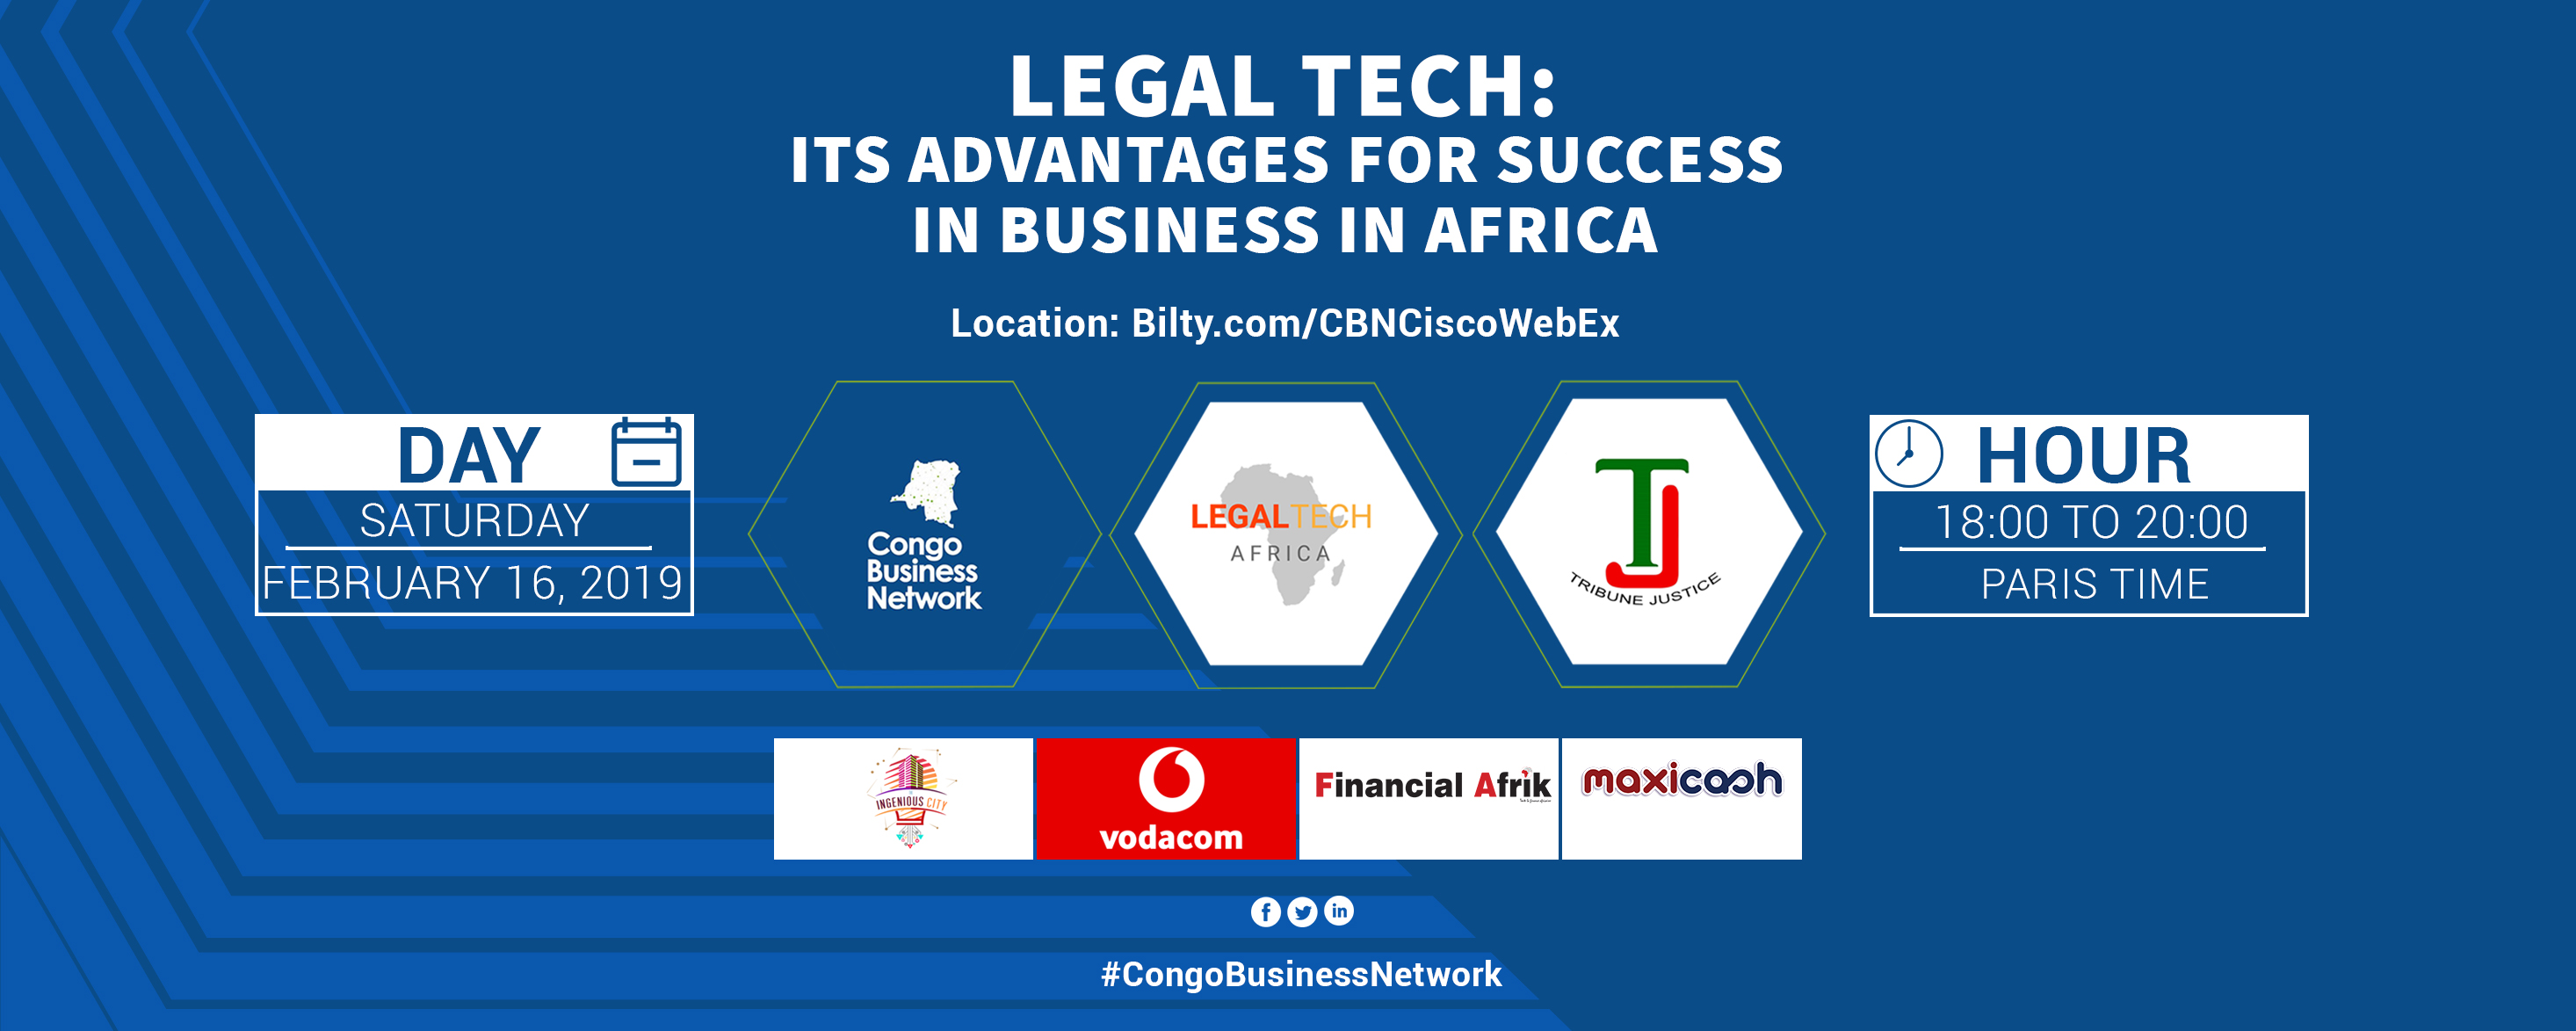 Congo Business Network, Legal Tech Africa and Tribune Justice - Legal Tech: its advantages for success in business in Africa Movemeback African event cover image